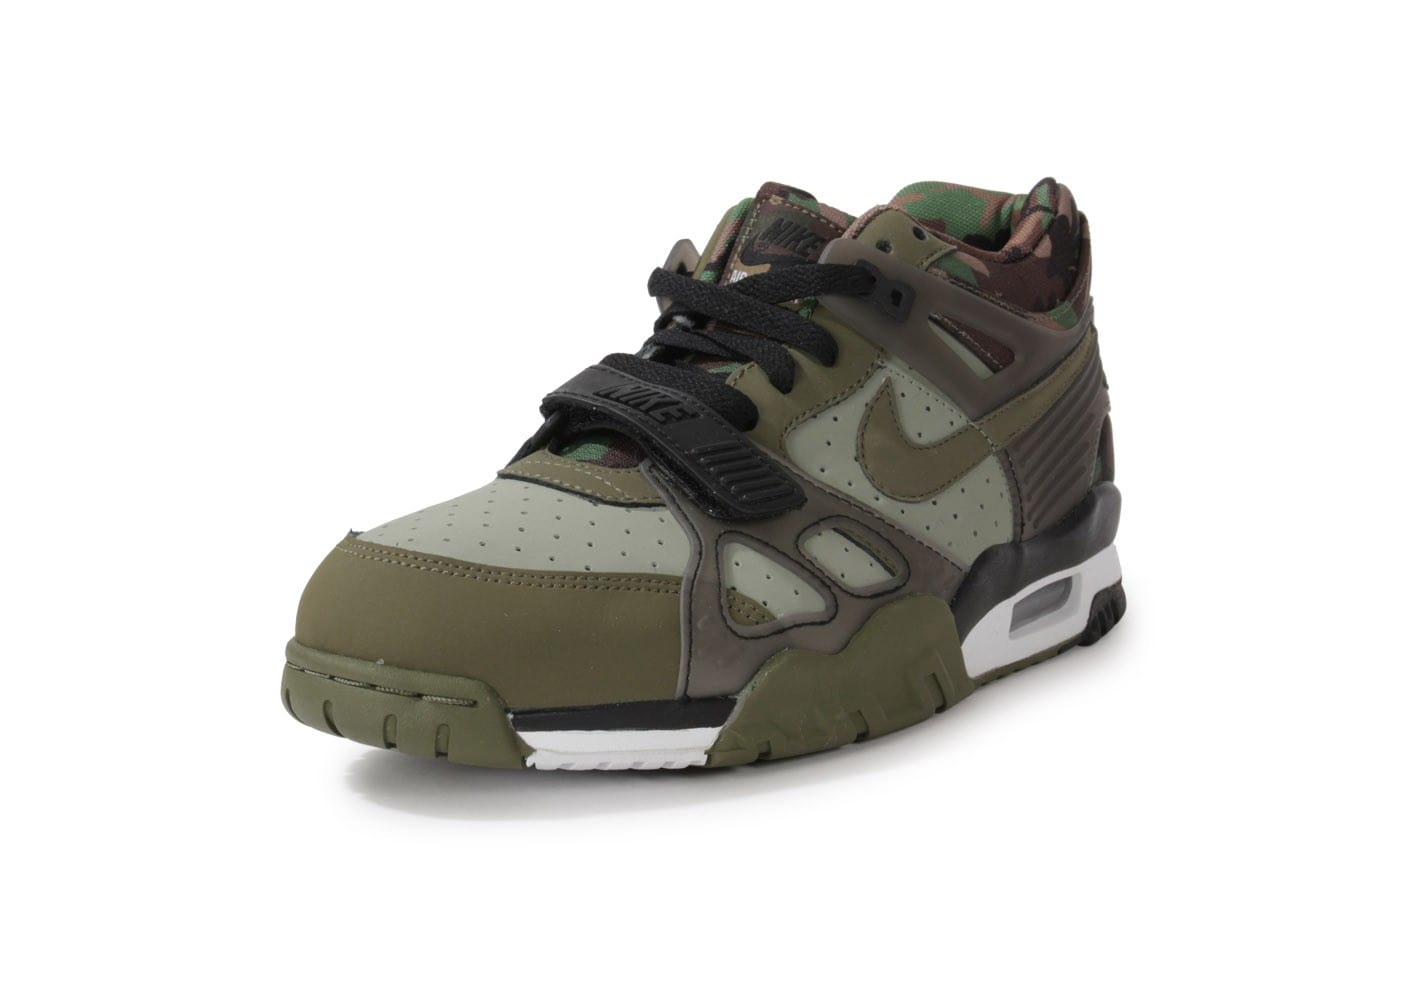 Nike Air Trainer 3 Camo Chaussures Baskets homme Chausport